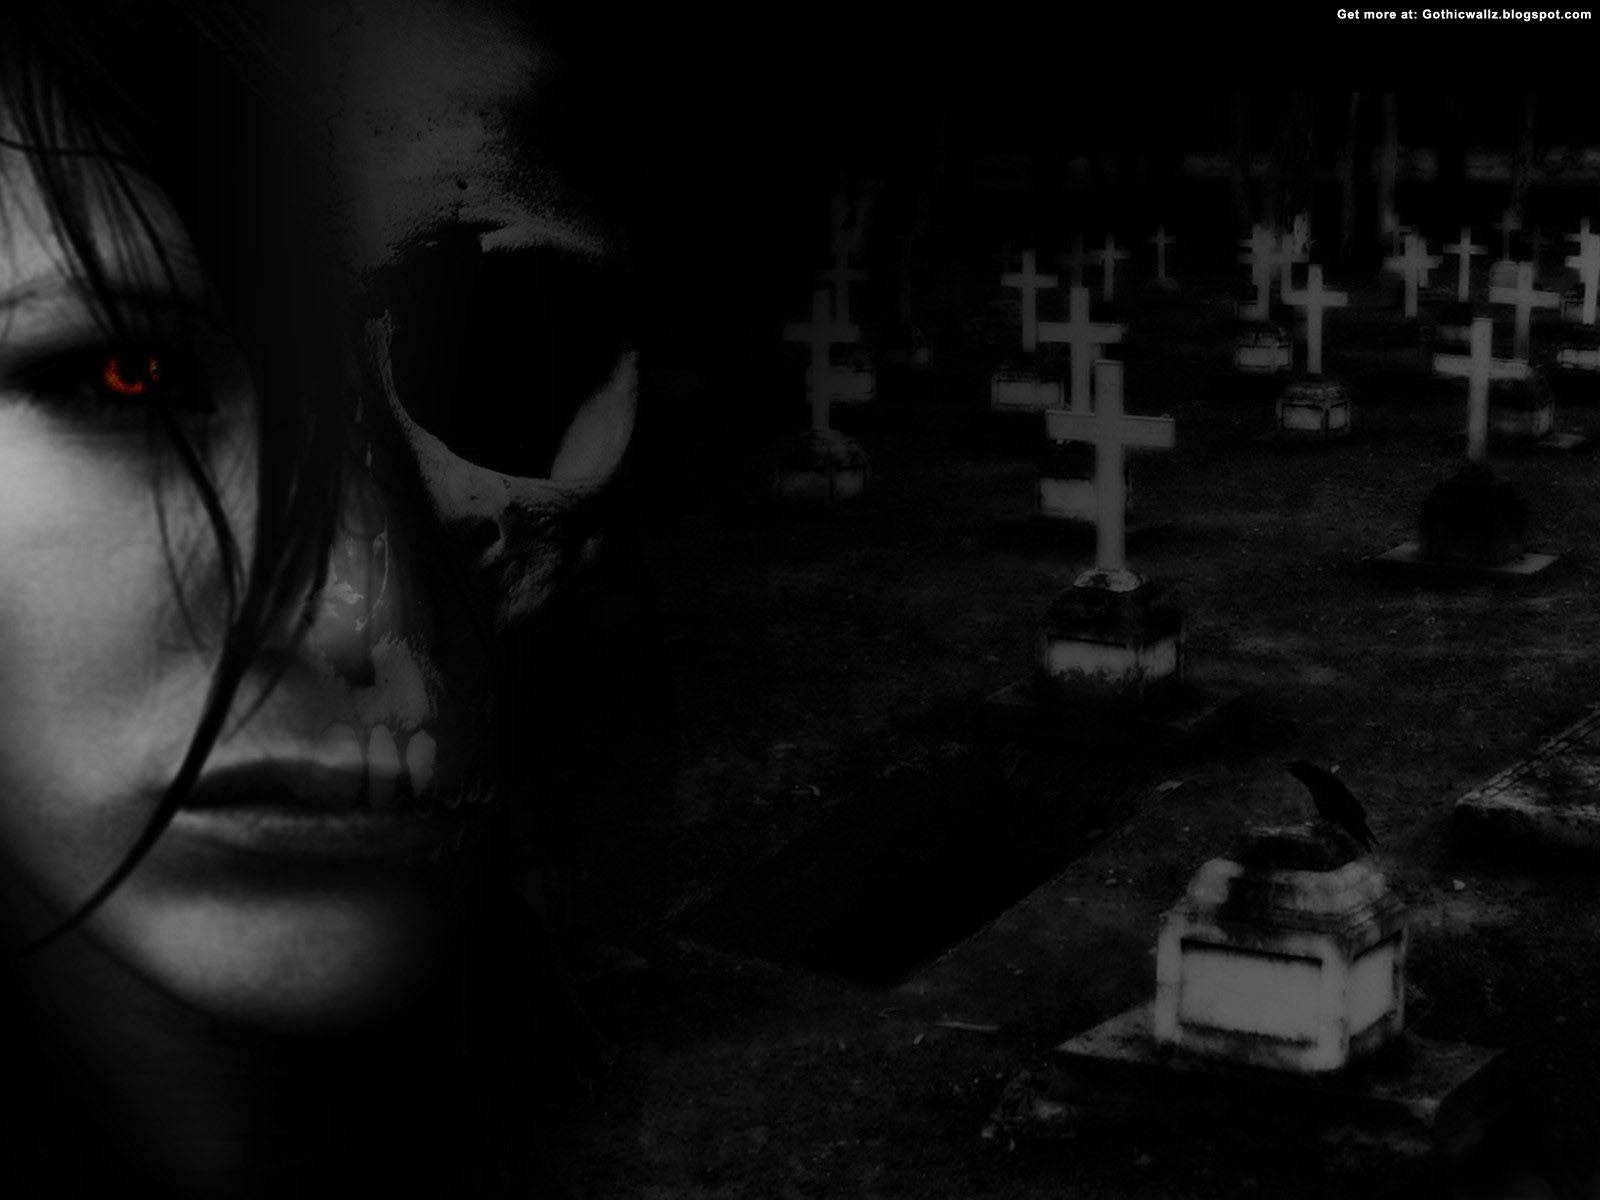 poze horror | Gothic Wallpaper Download